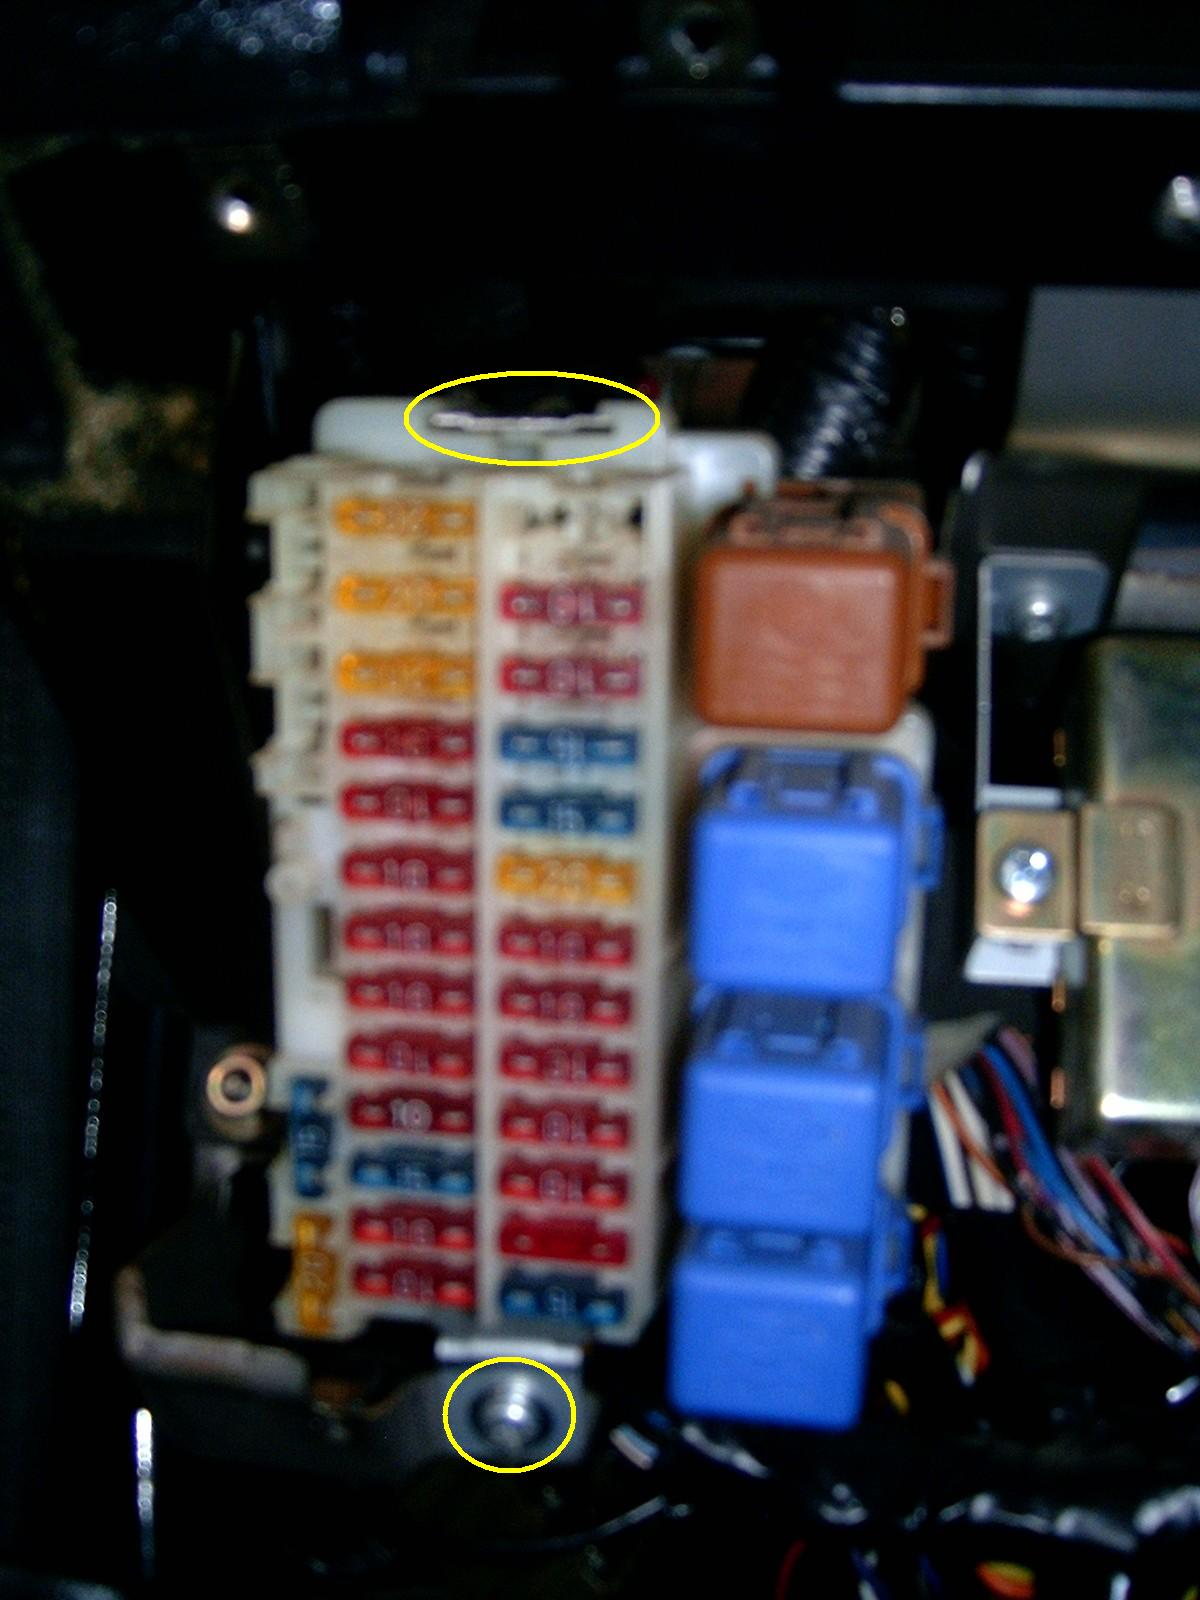 1994 Nissan Sentra Fuse Box Trusted Wiring Diagram 1992 Stanza Maxima Fuses Residential Electrical Symbols U2022 2011 Location